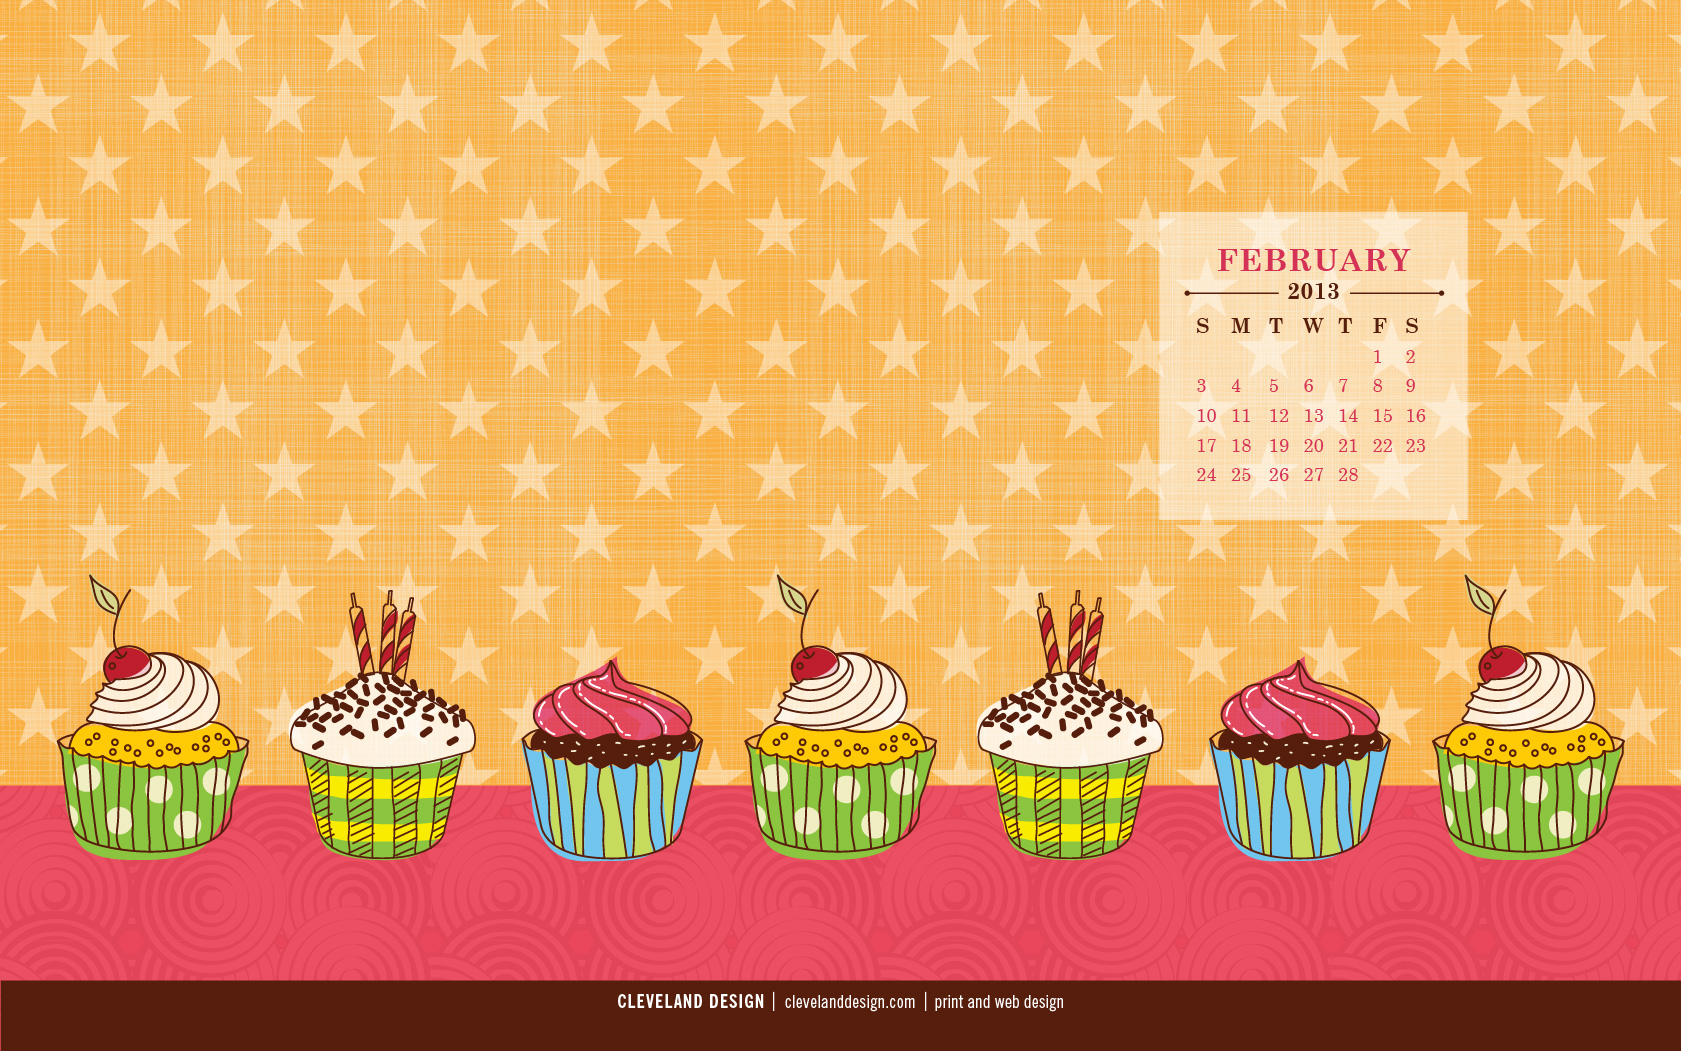 New Desktop Wallpaper Our February Calendar Comes to your Screen 1681x1051